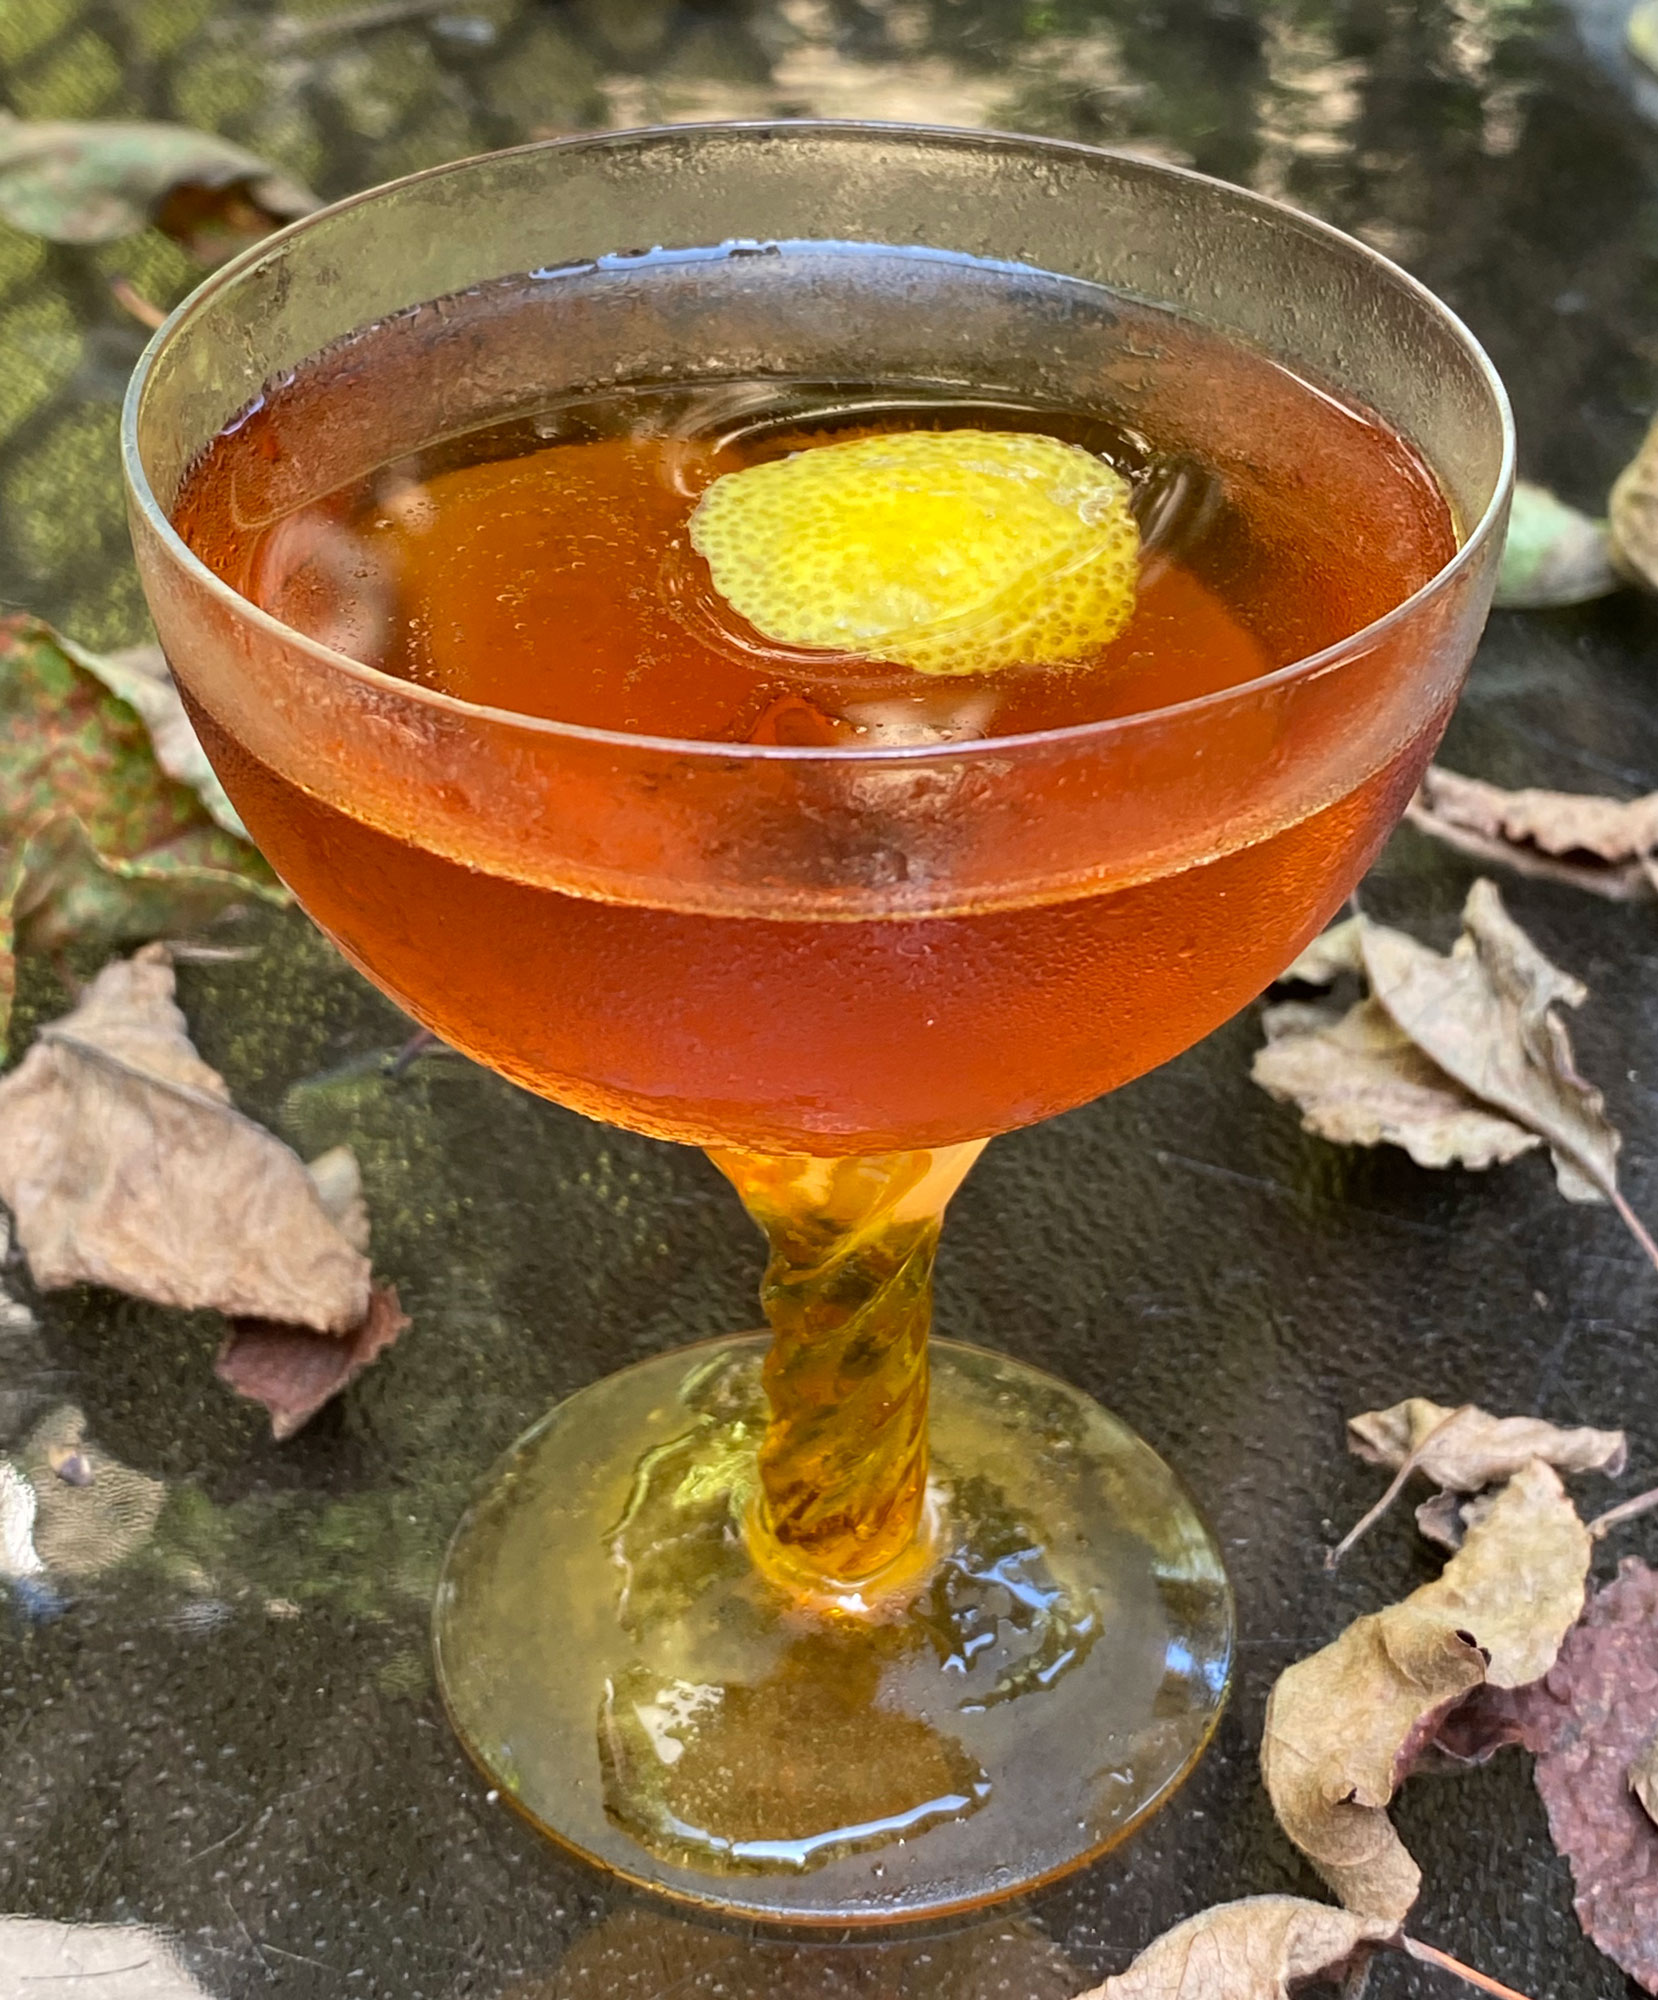 An example of the Harvest Cocktail, the mixed drink (cocktail) featuring apple brandy, Cardamaro Vino Amaro, and Angostura bitters; photo by Martin Doudoroff